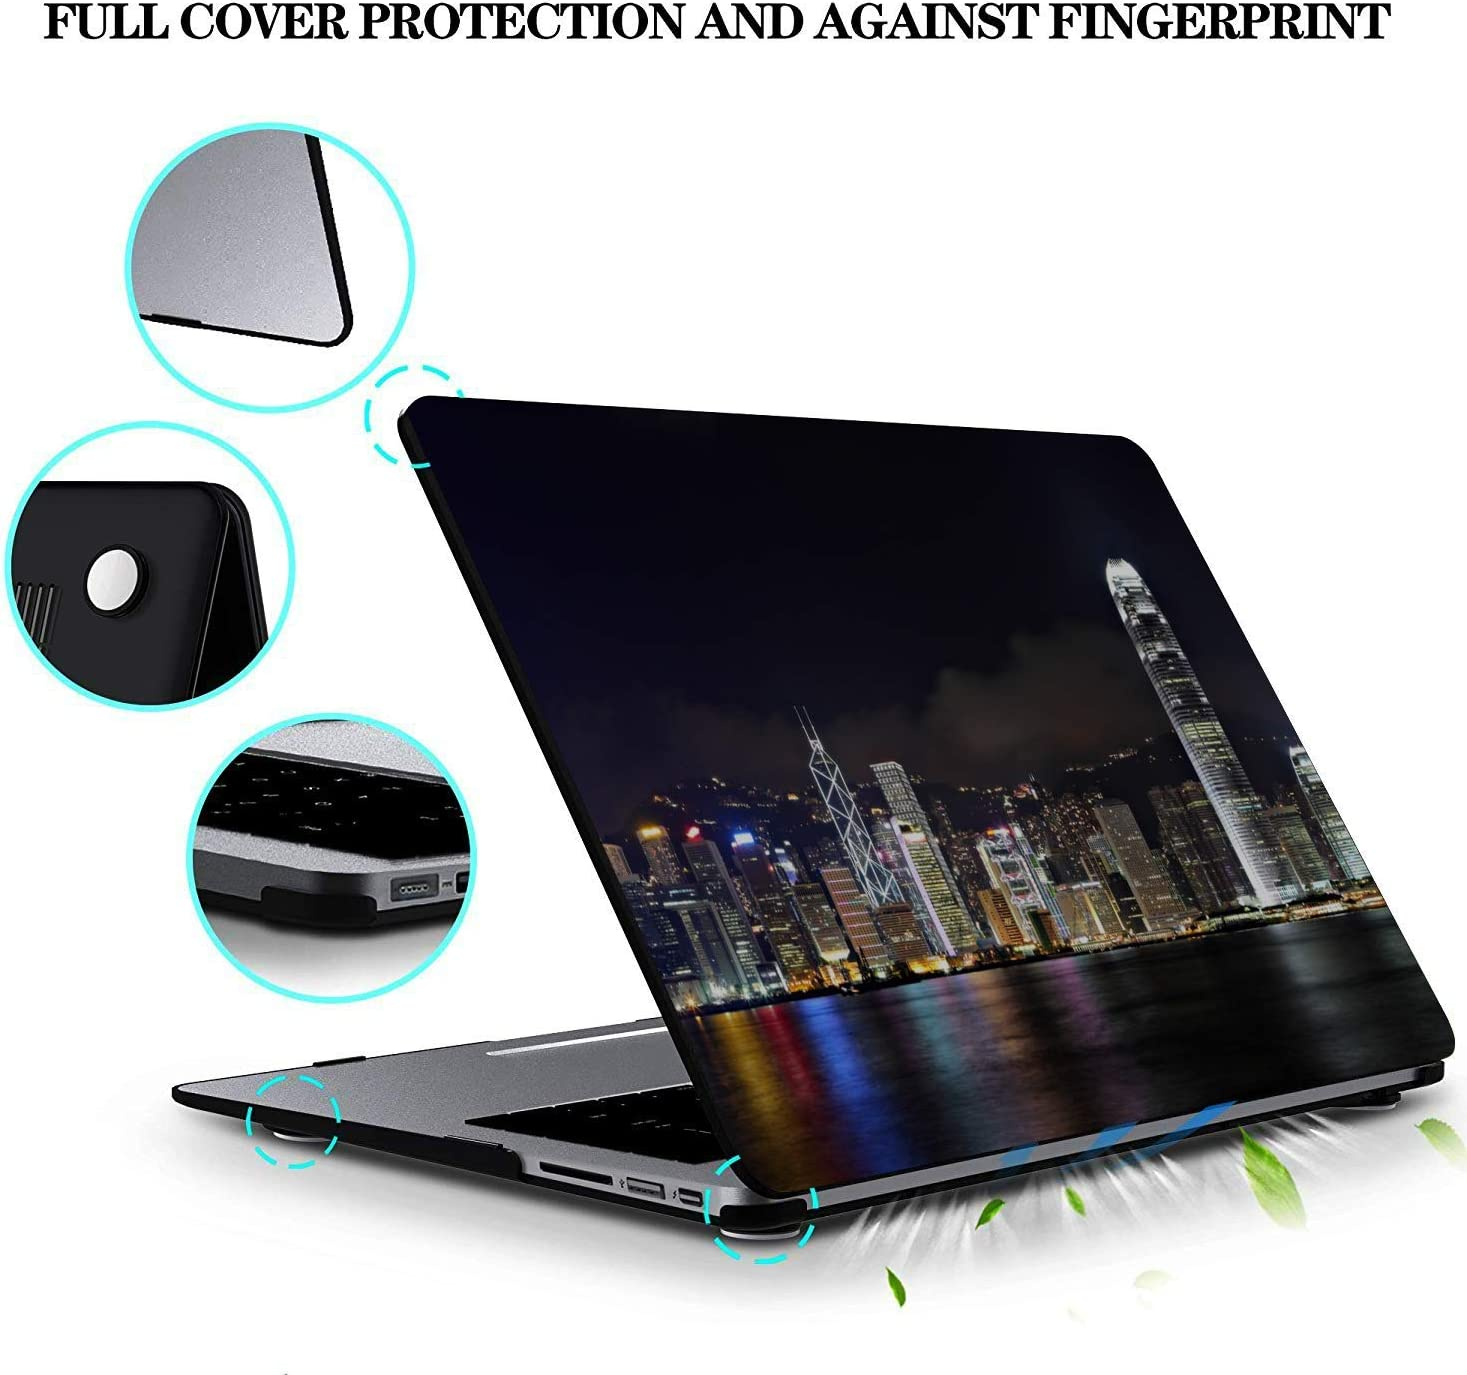 15 Inch Laptop Case Shining Quiet Beautiful City Night View Plastic Hard Shell Compatible Mac Air 11 Pro 13 15 MacBook Pro 2017 Case Protection for MacBook 2016-2019 Version